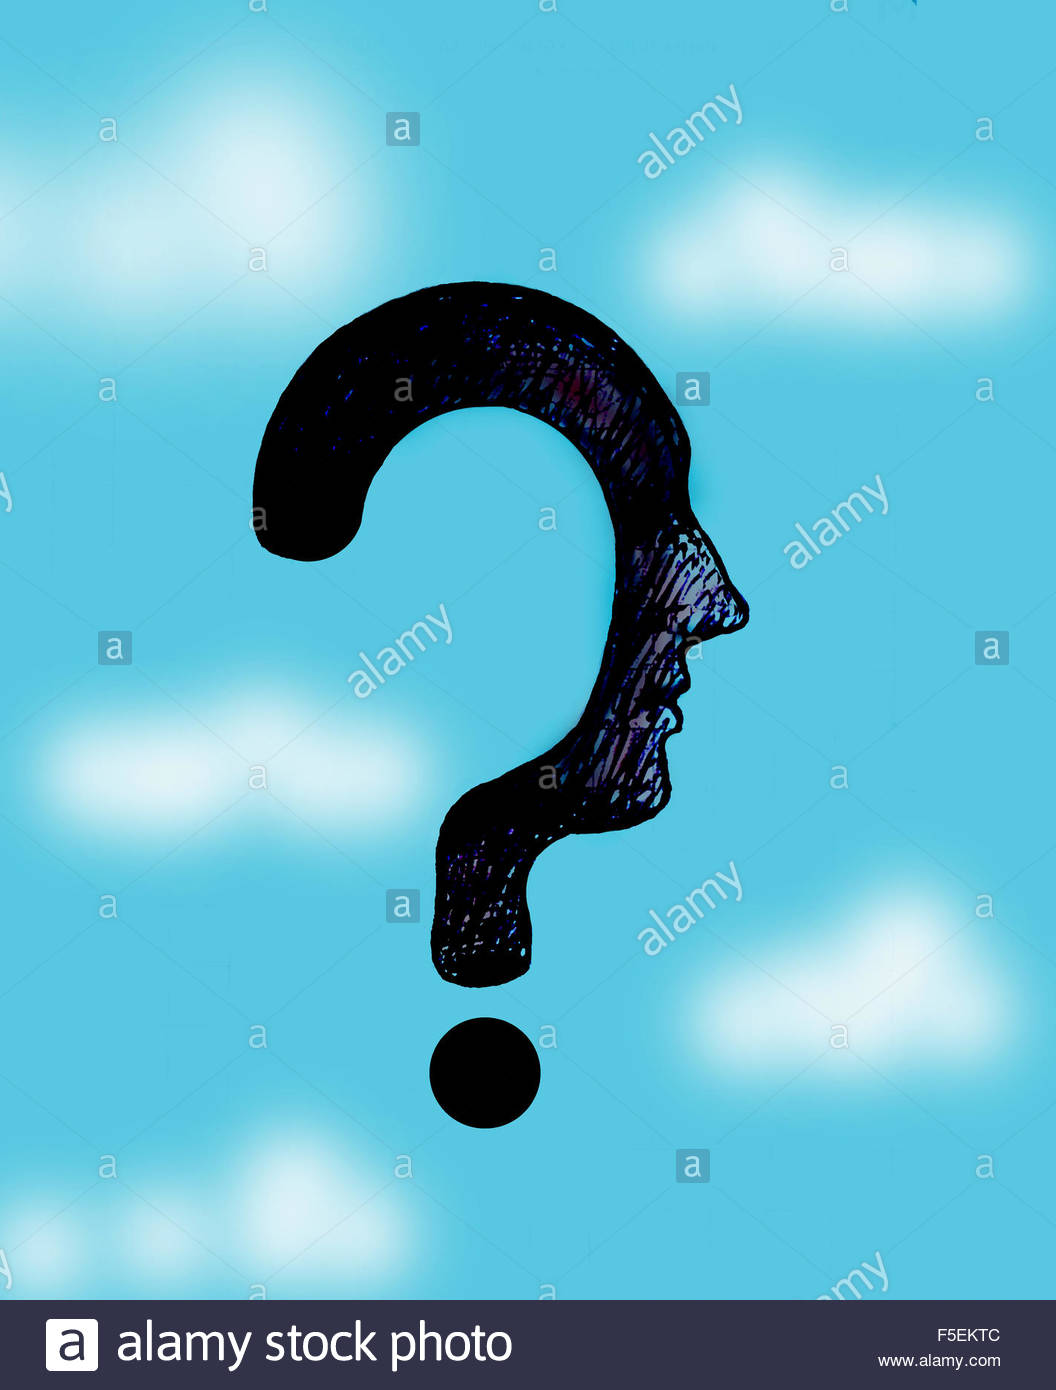 Man's profile as question mark - Stock Image